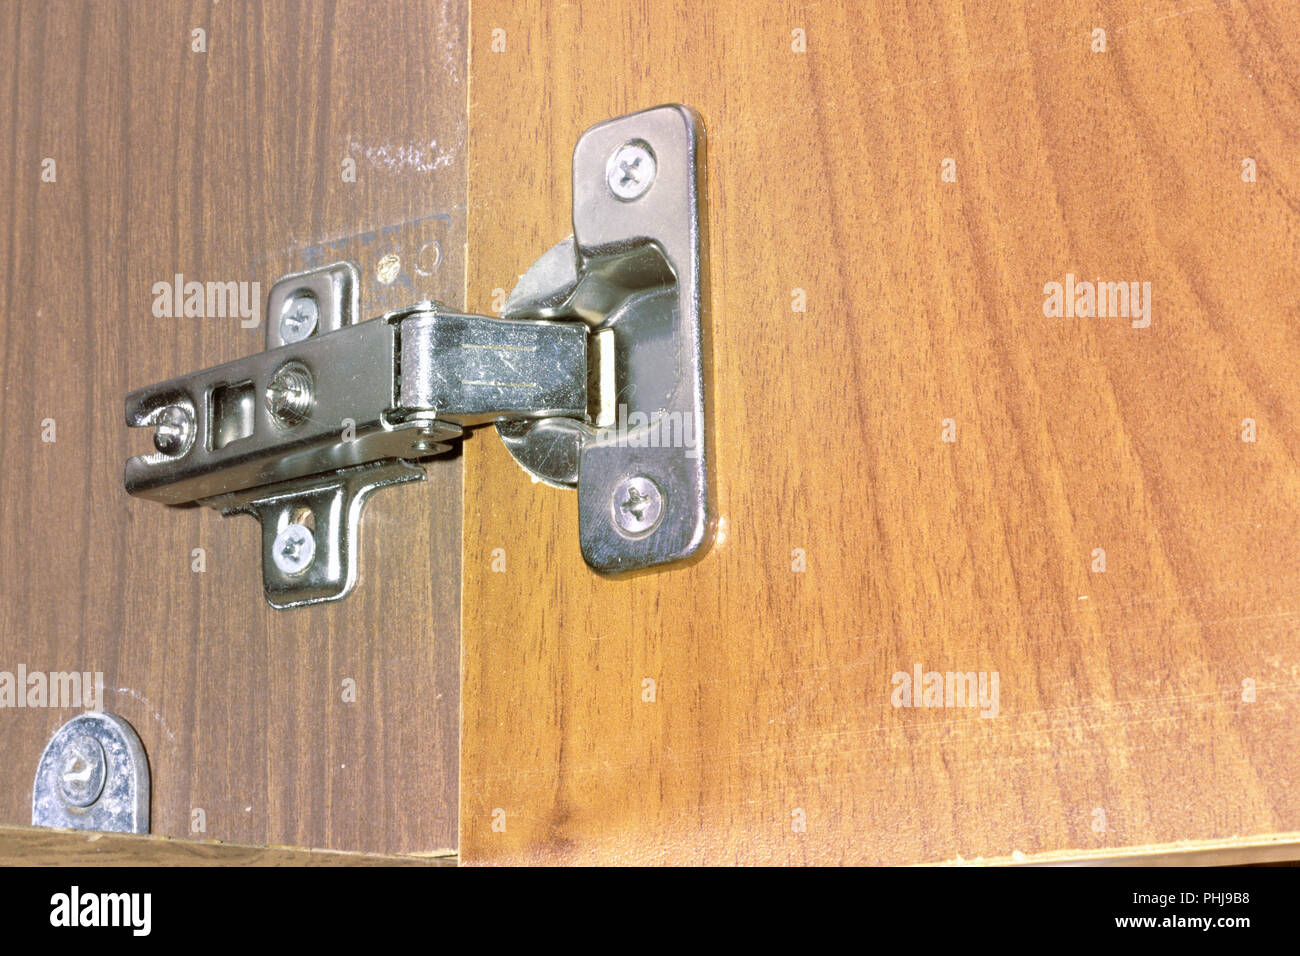 Concealed Cabinet Hinge. Reliable Fastening Of New Door To The Old Wardrobe  Rack; With Clipping Path